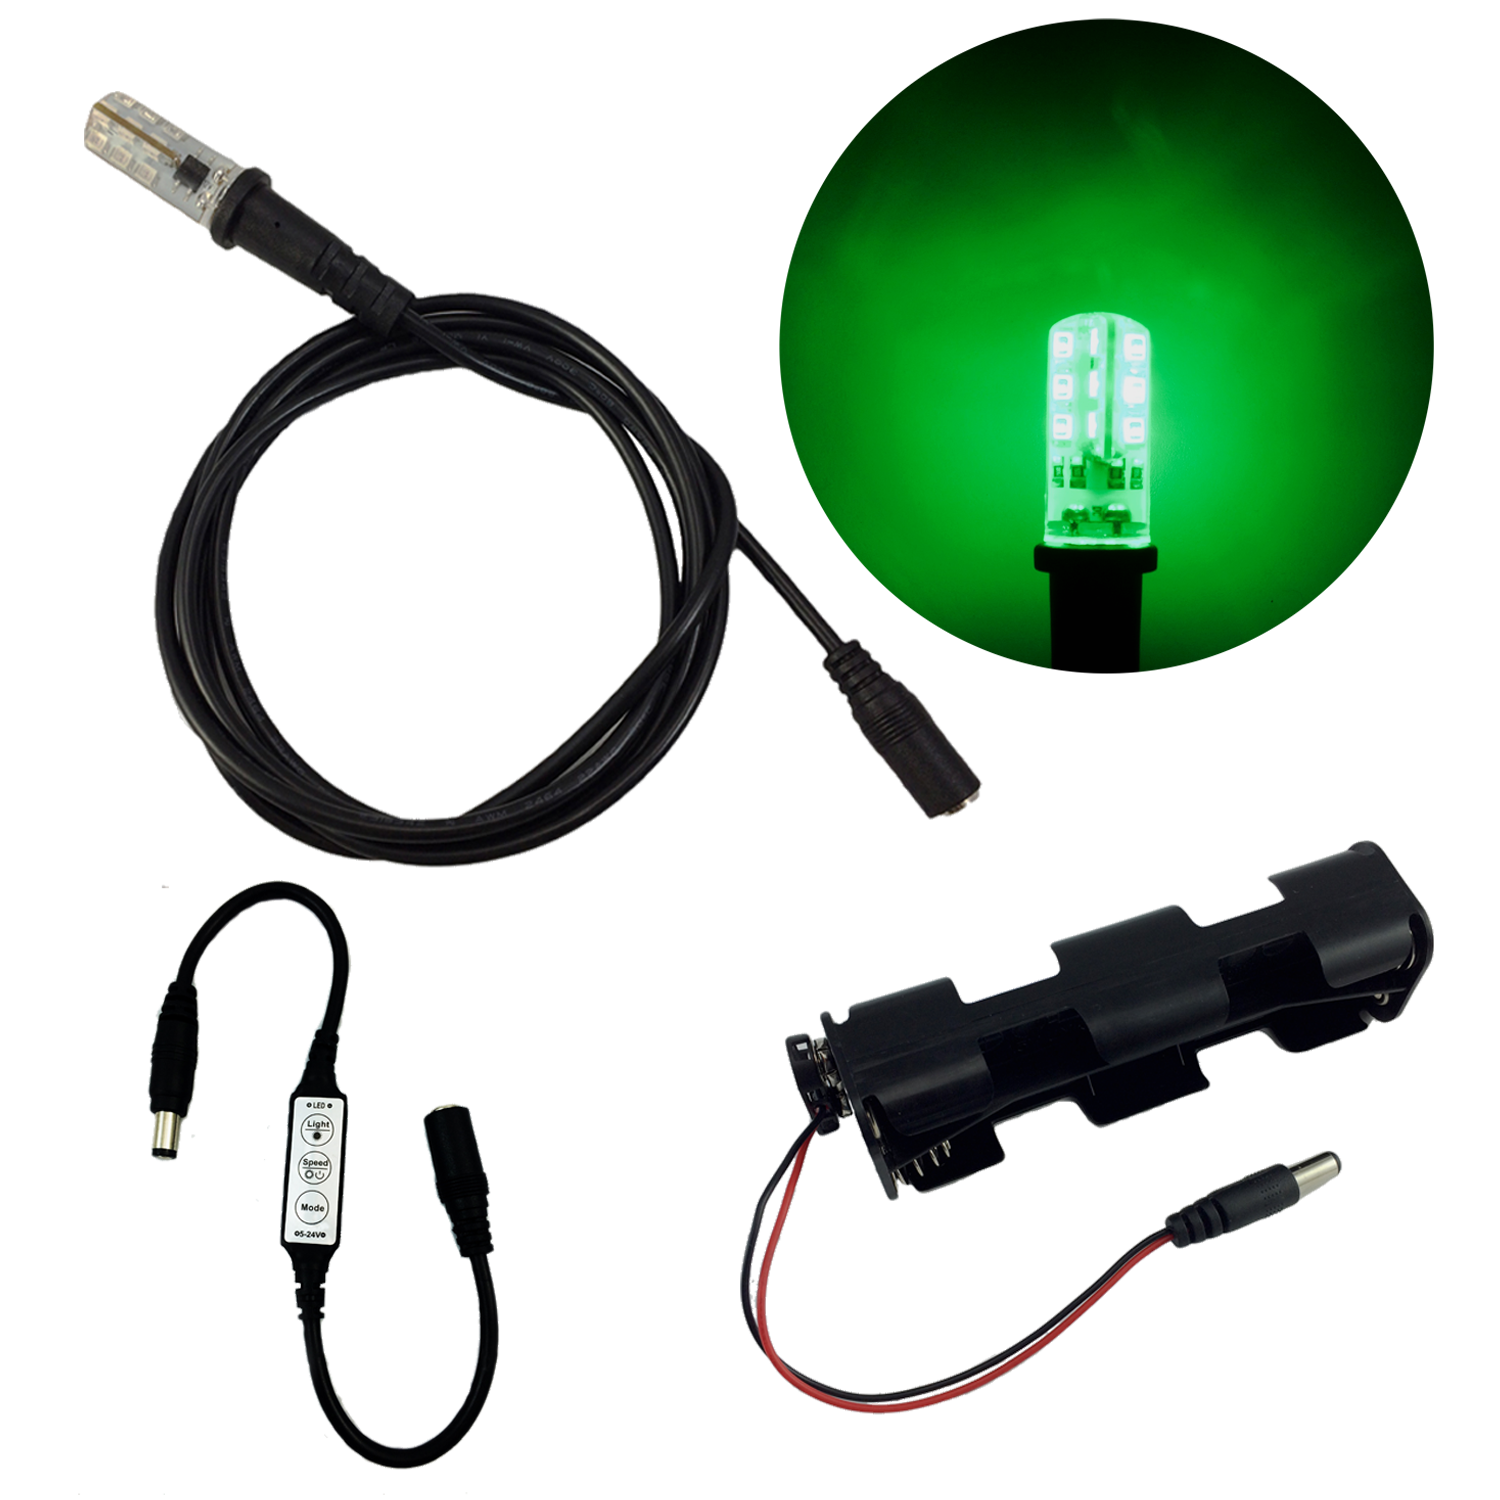 Cable transparent lighting. Special effects green led